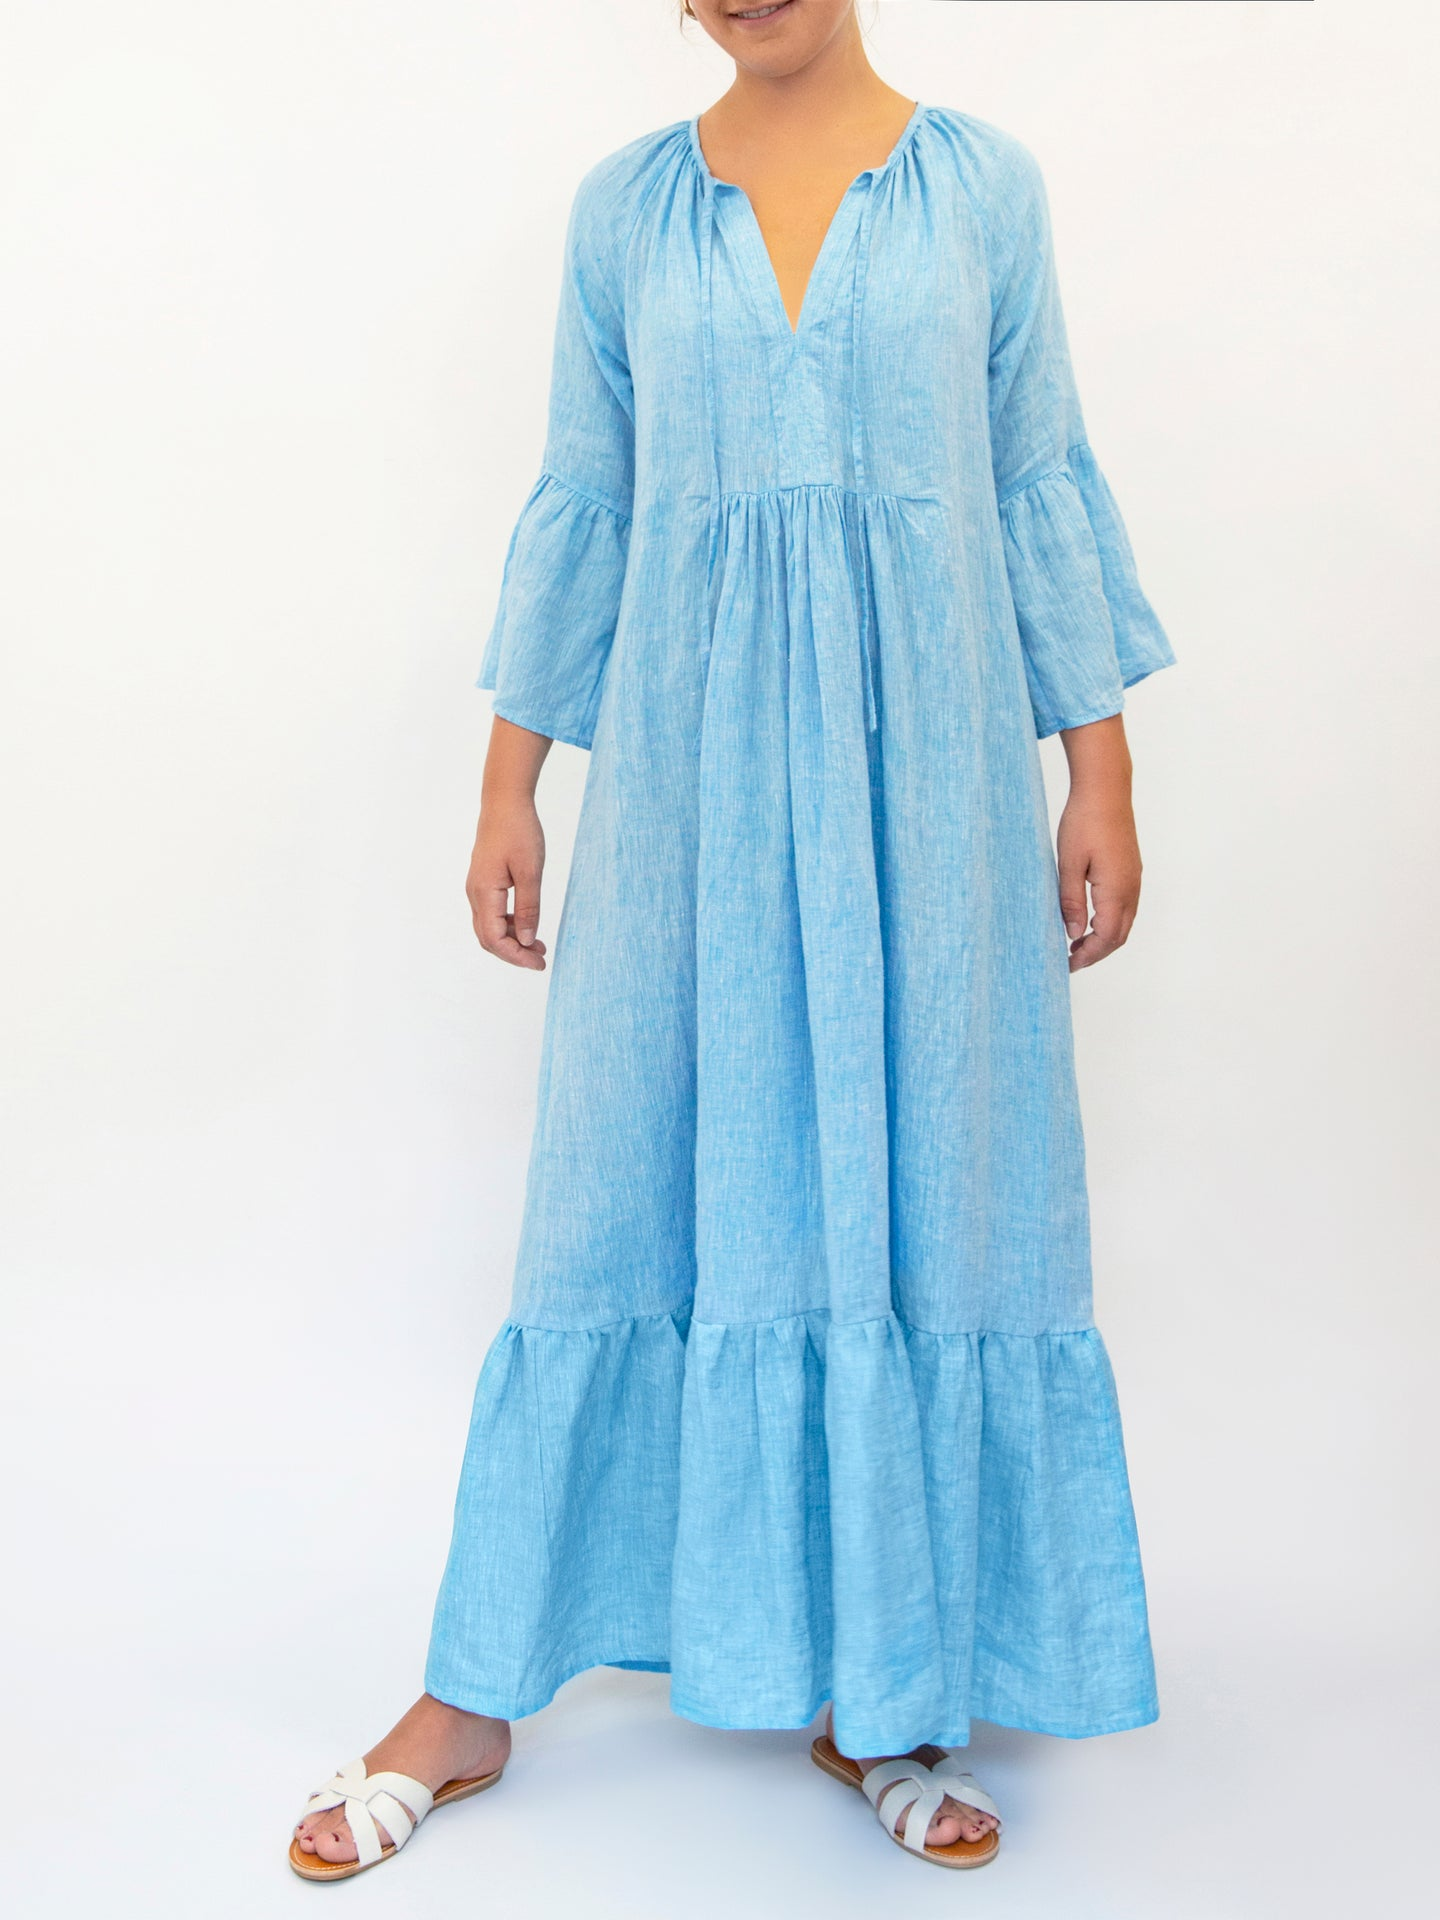 Elizabeth fluted sleeve maxi dress